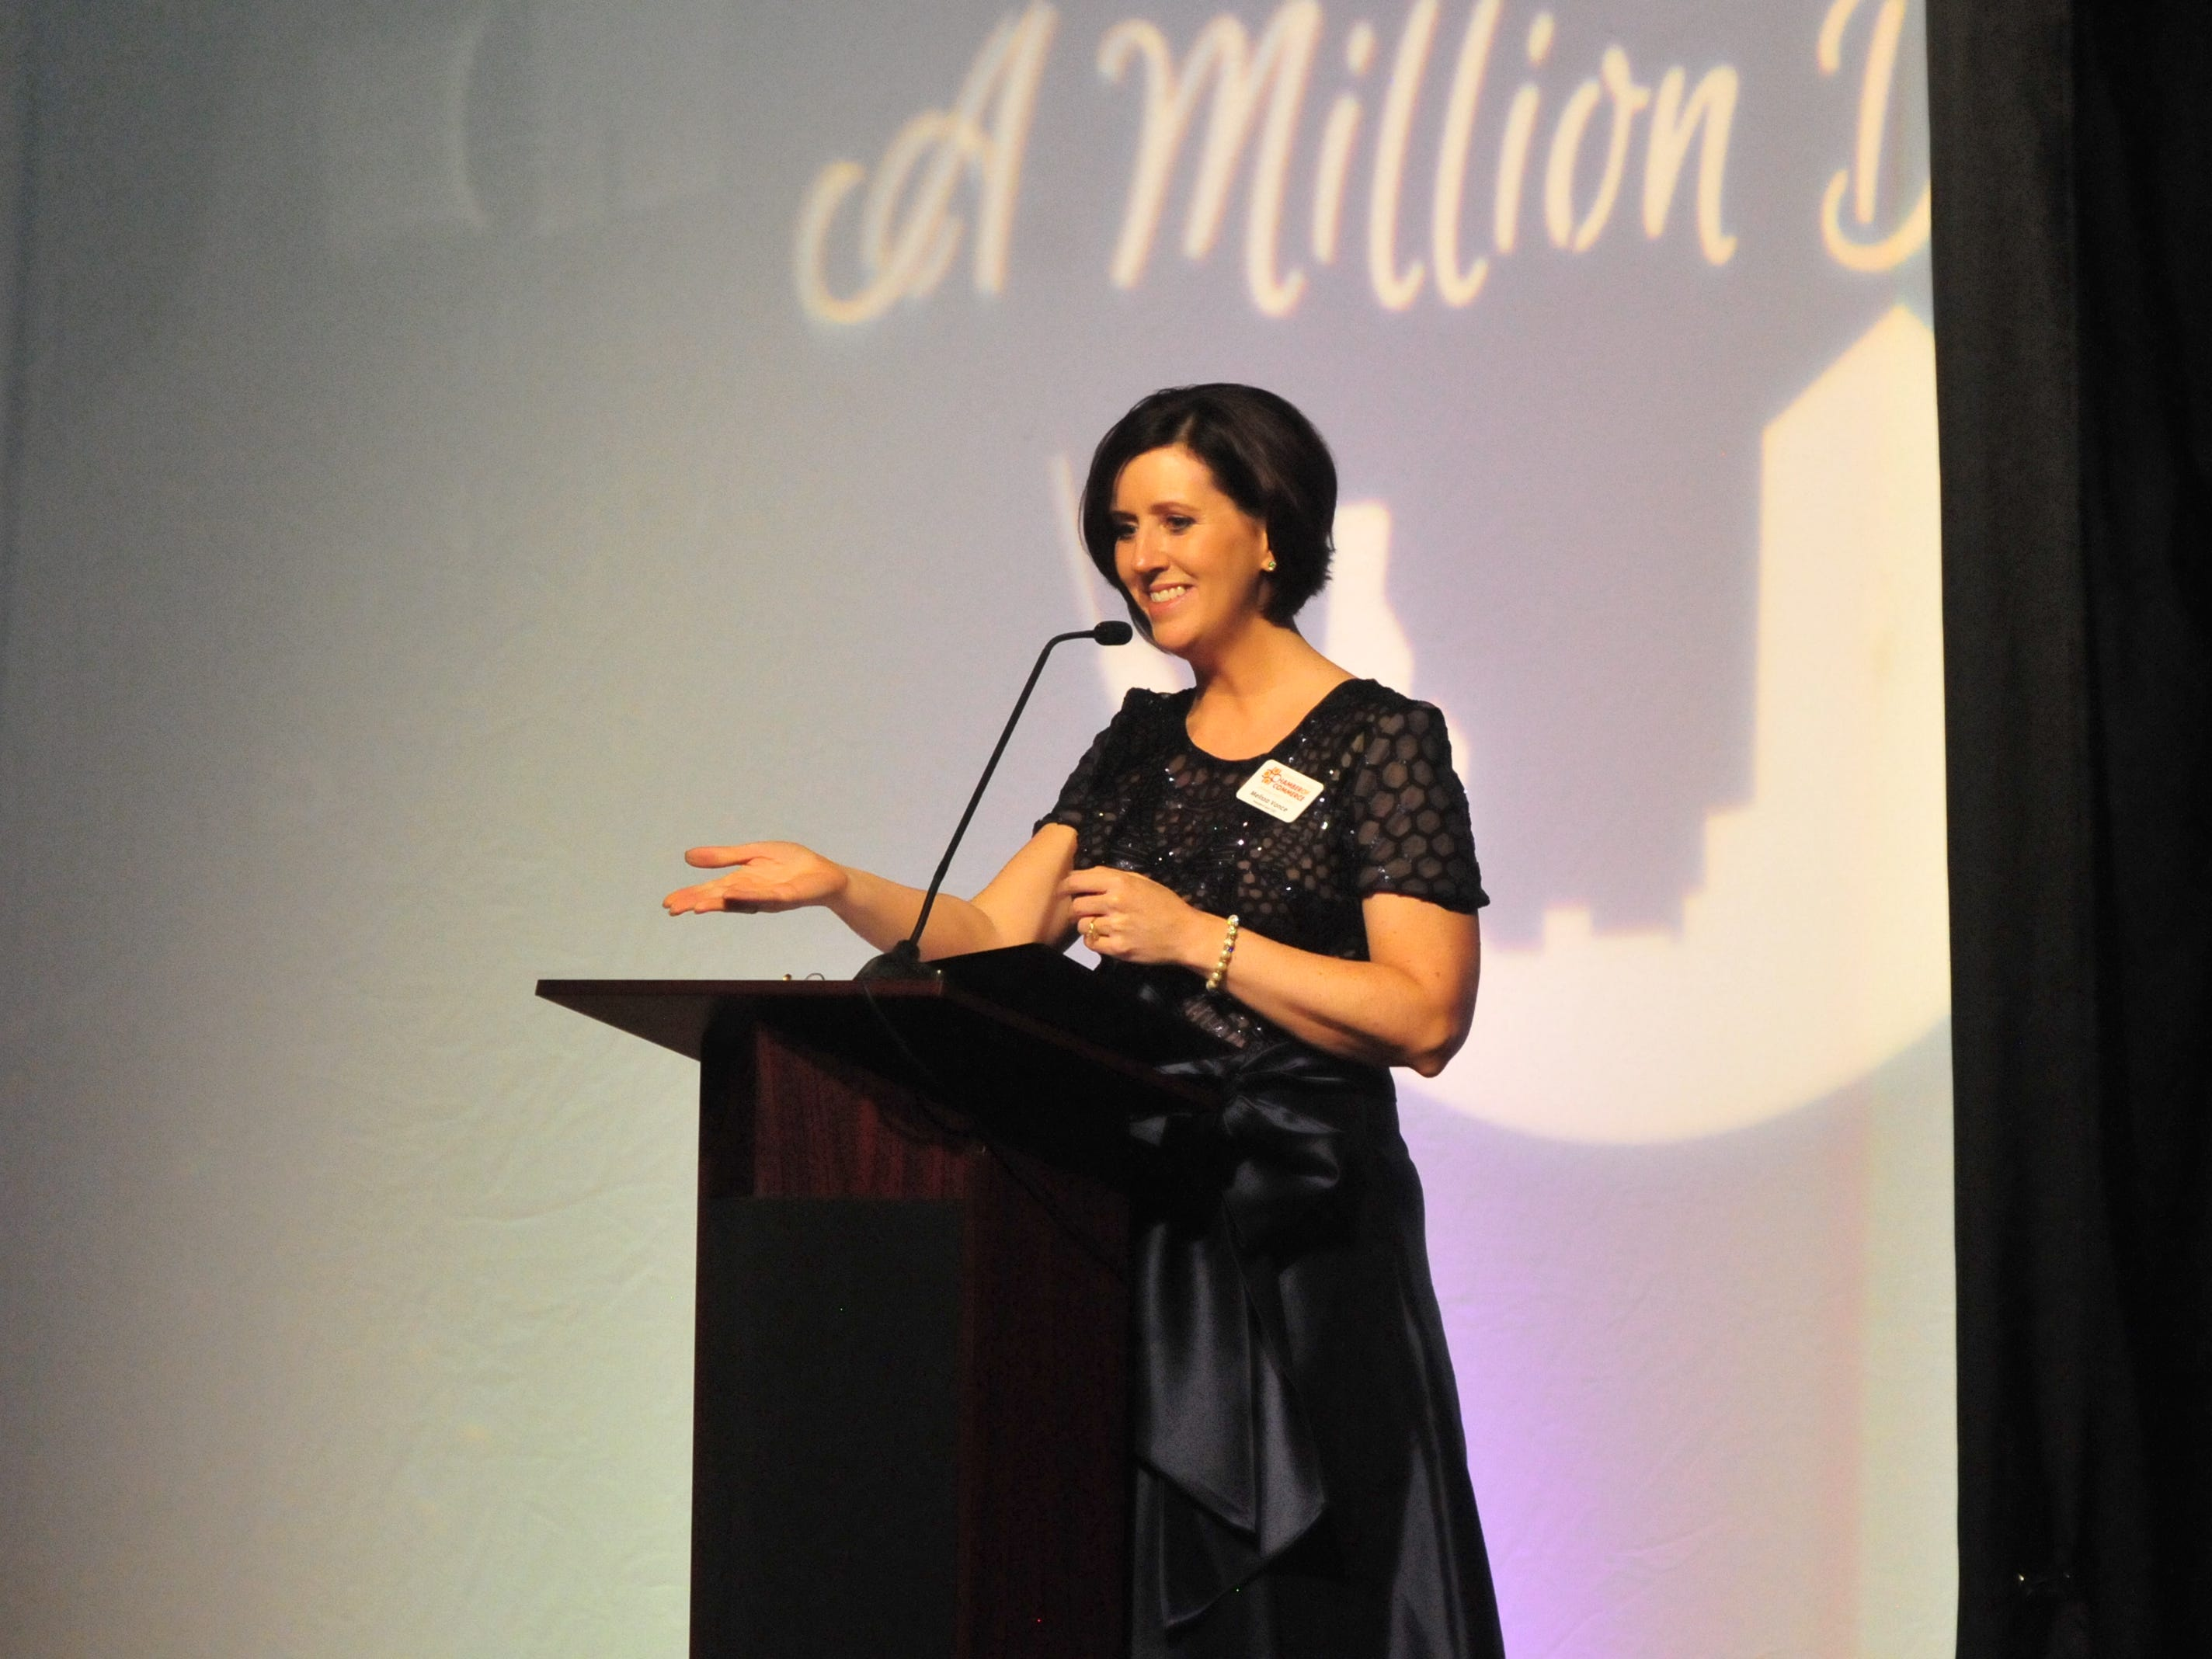 """Melissa Vance, president and CEO of the Wayne County Area Chamber of Commerce, speaks Friday night during the Chamber's dinner, """"A Million Dreams."""""""